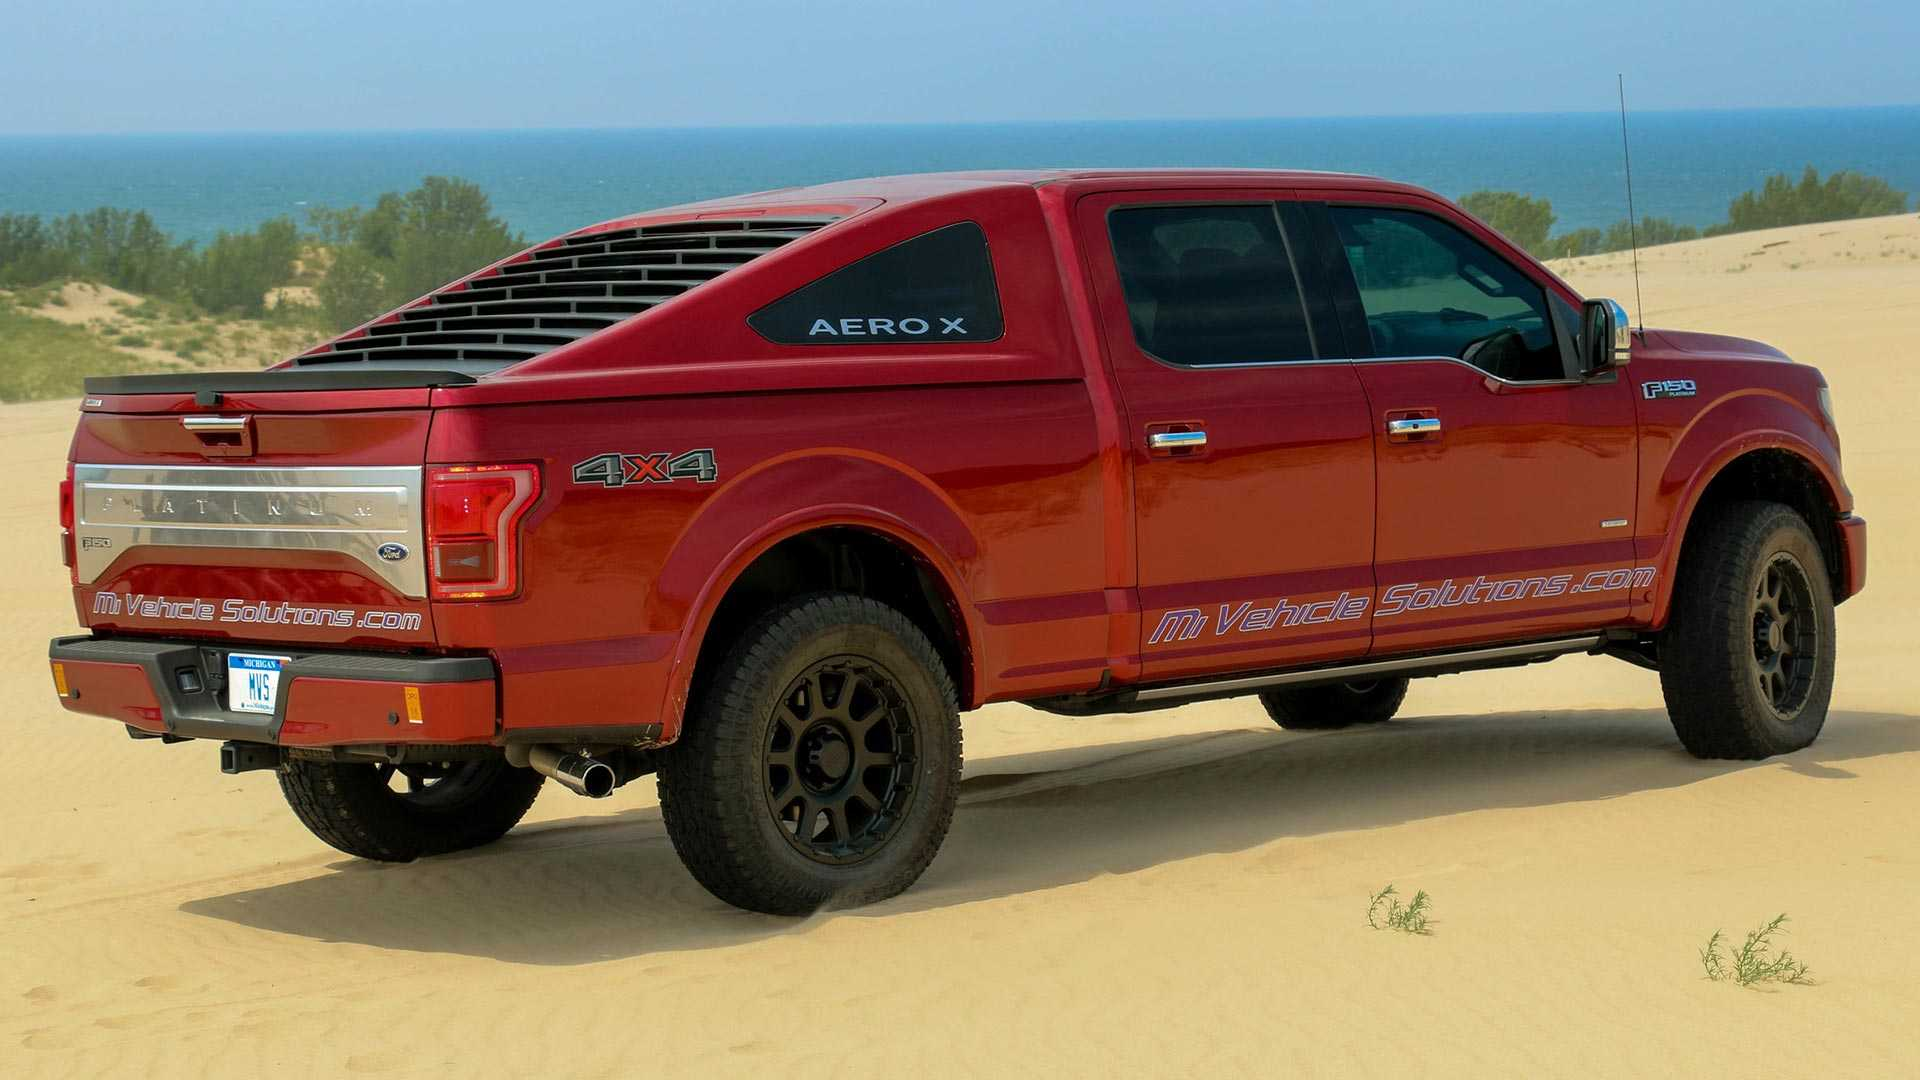 The Michigan Vehicle Solutions takes things quite a bit further with their fastback-style bed cap called the Aero X